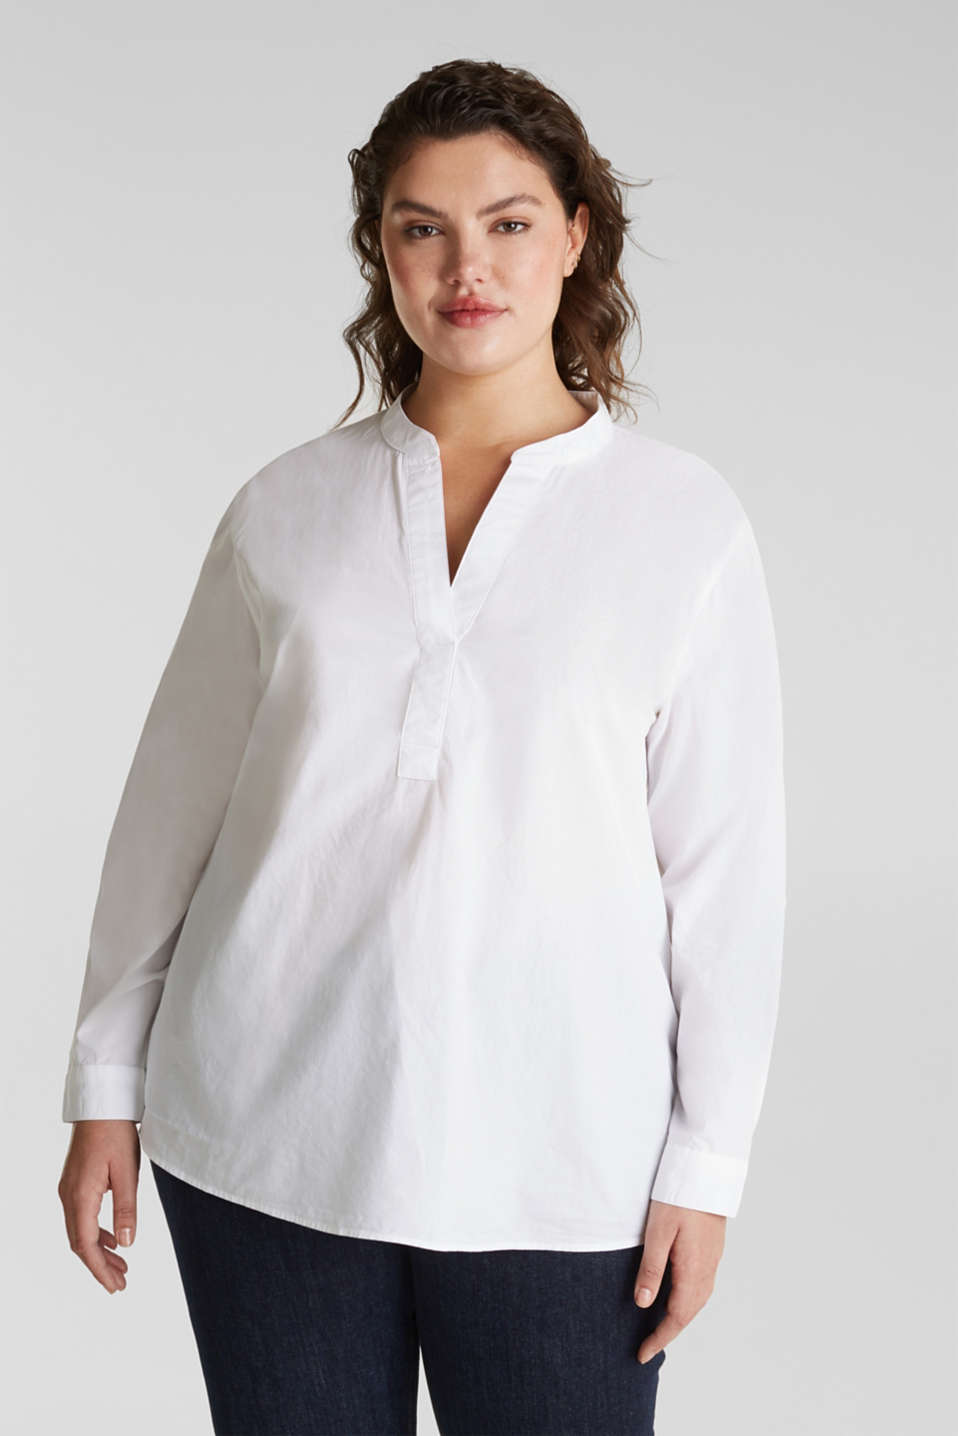 Esprit - CURVY simple blouse top, 100% cotton